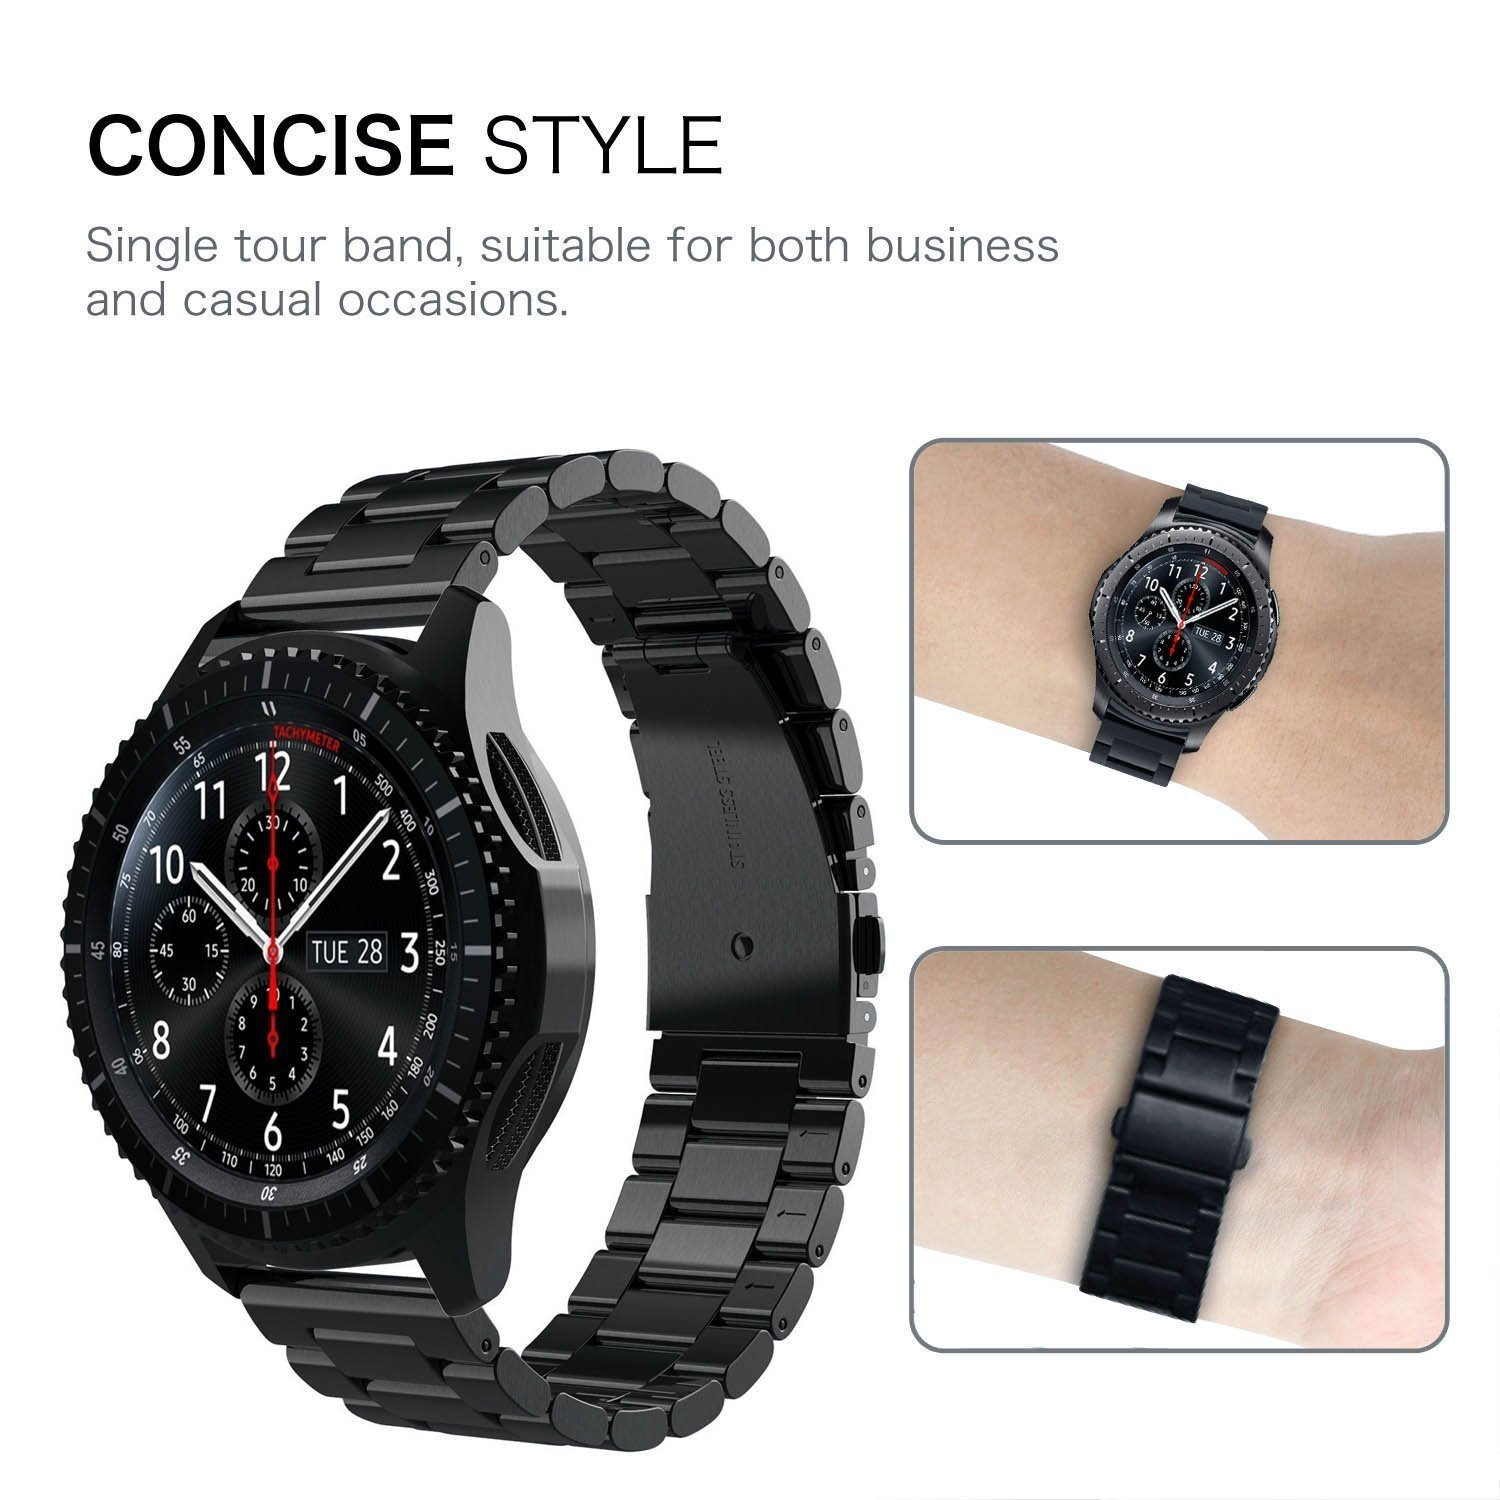 18mm 22mm 20mm 24mm Stainless Steel Watch Band Strap For SAMSUNG Galaxy Watch 42 46mm GEAR S3 Active2 Classic for galaxy watch 3